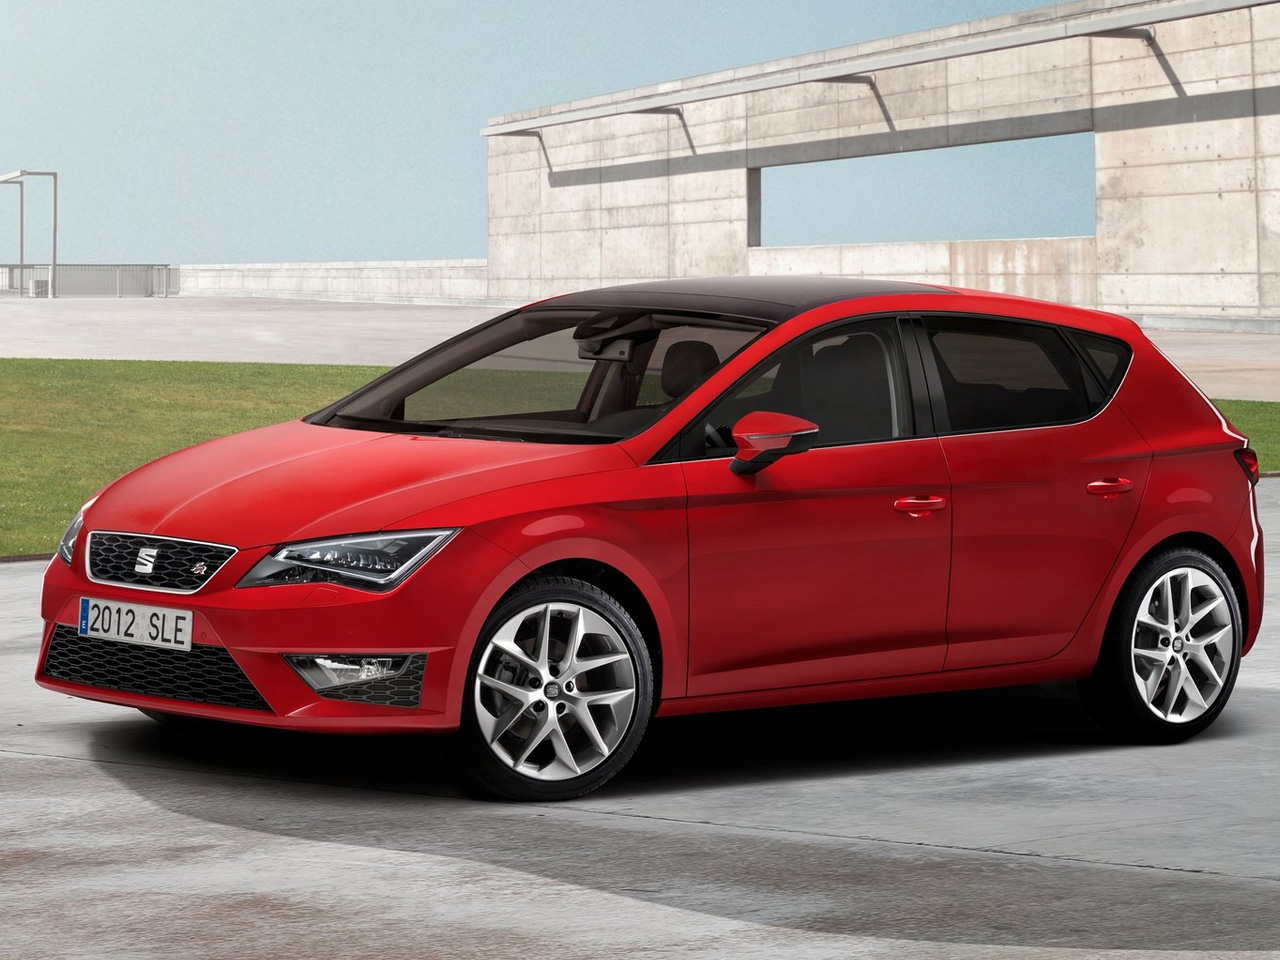 2014 seat leon fr in uk at the price of 22075. Black Bedroom Furniture Sets. Home Design Ideas